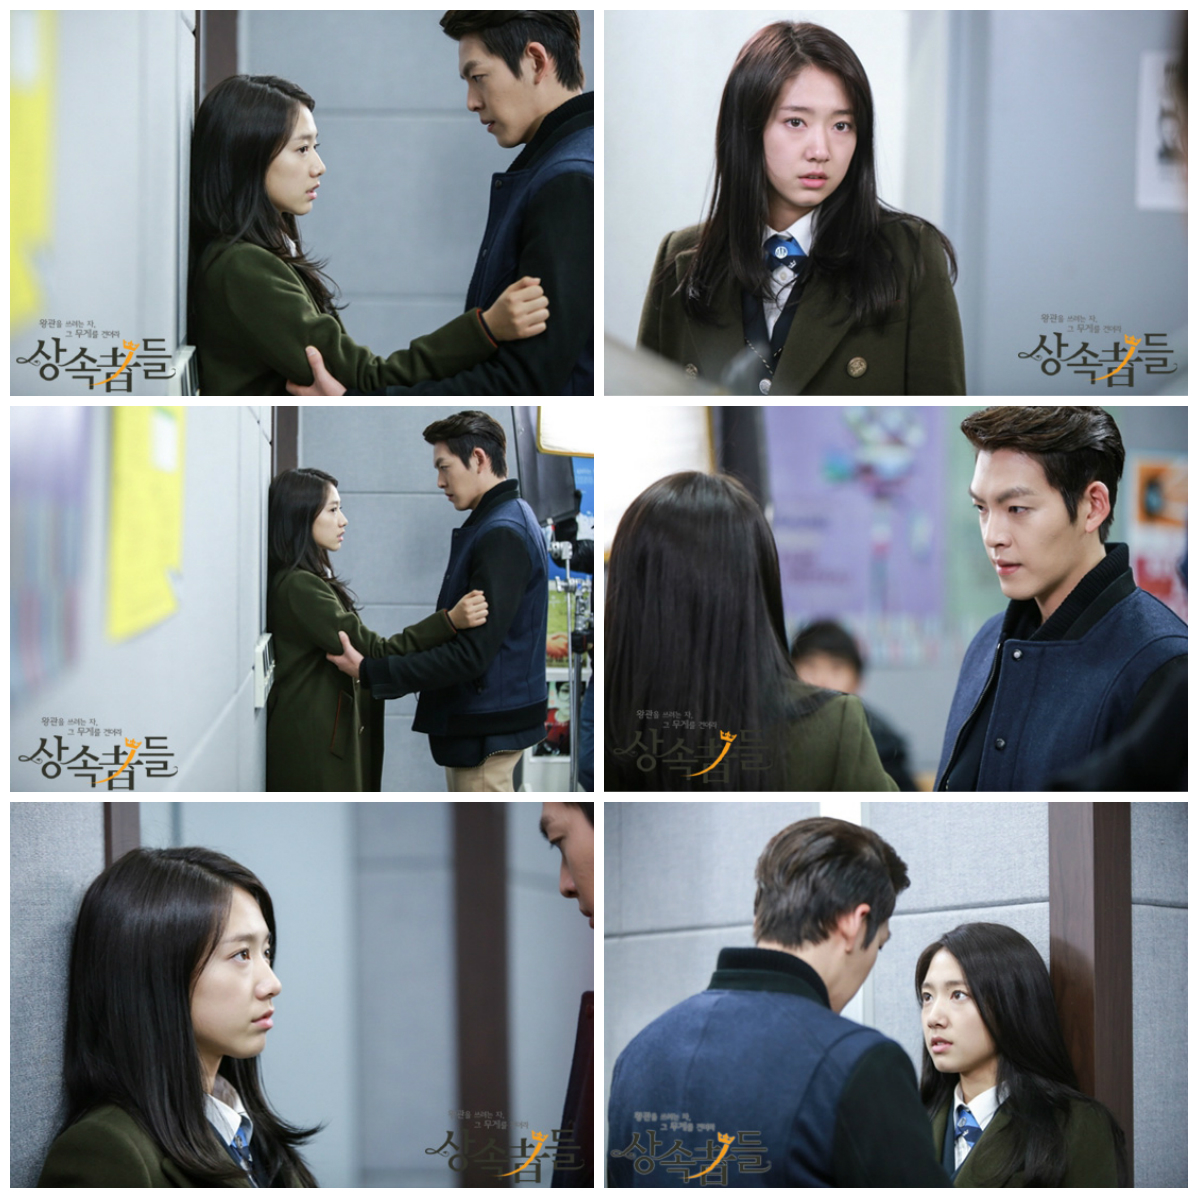 The Heirs Episode 13 Teaser - Kim Woo Bin and Park Shin Hye